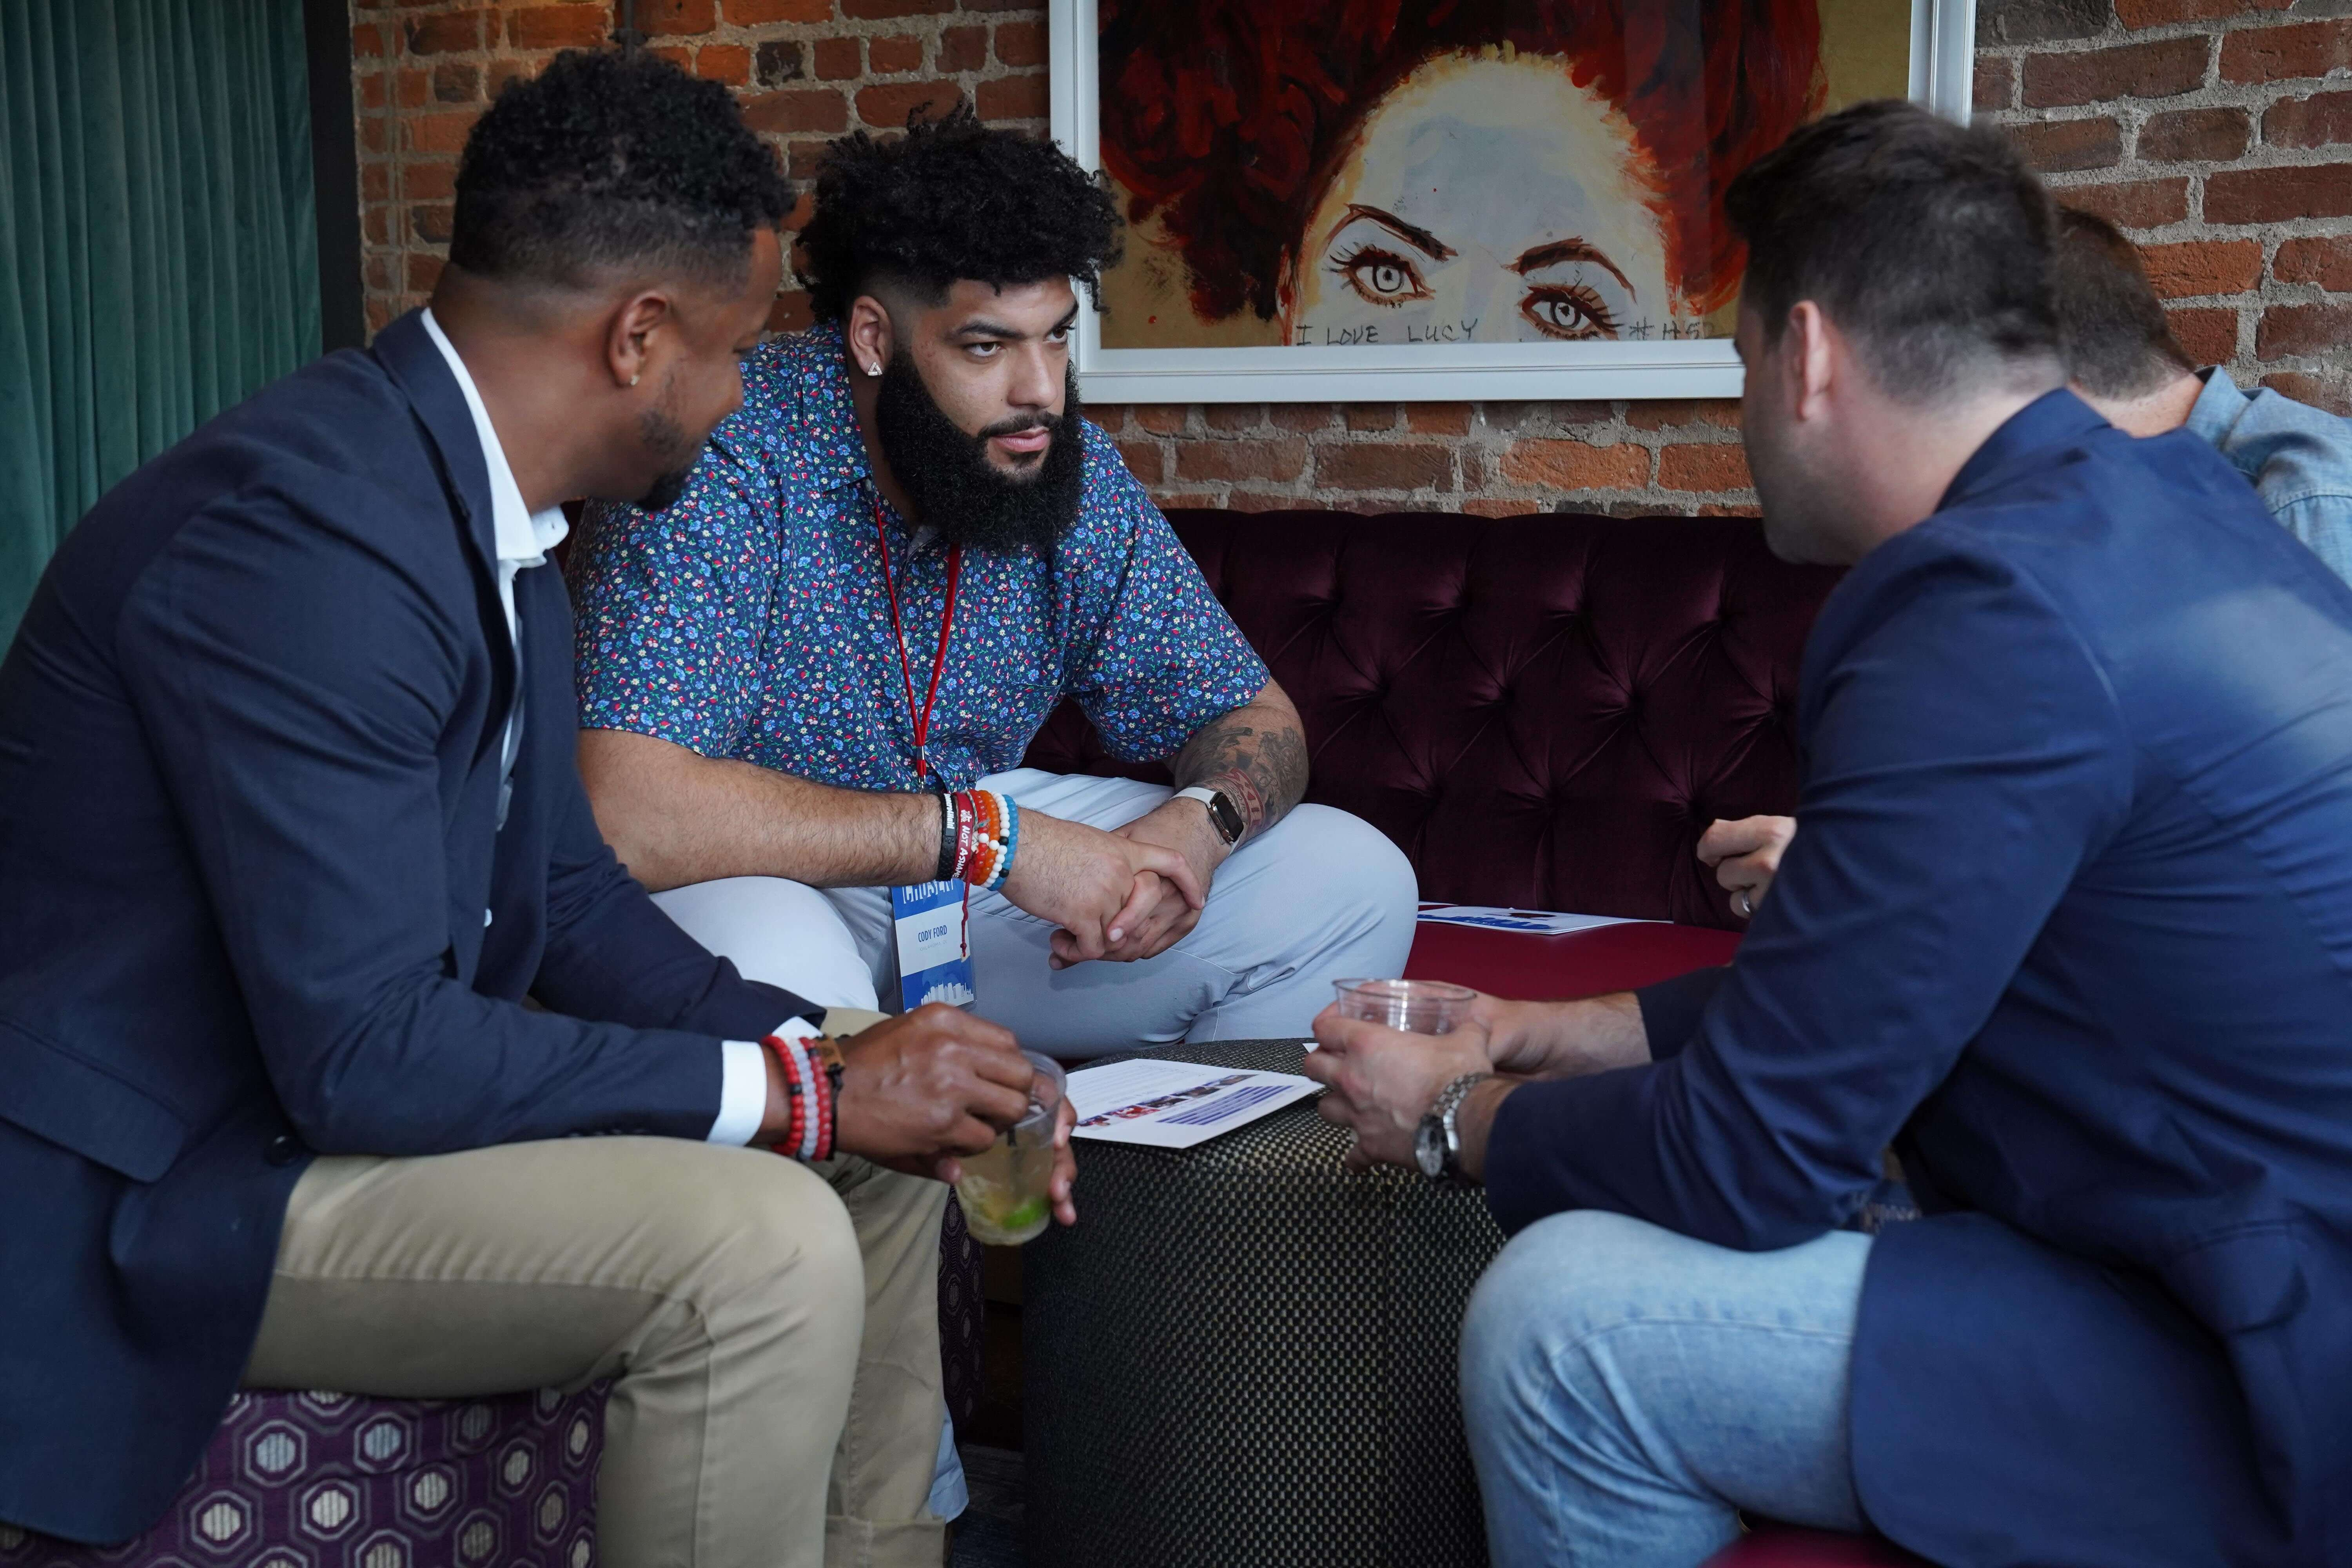 """Players met one-on-one with brand executives in a """"speed dating"""" format to uncover potential for future endorsement partnerships. Brands at CHOSEN included Pizza Hut, P&G, Mars, Goodyear, DirecTV, Nike, Dunhill, Twitch, and Draft Kings."""